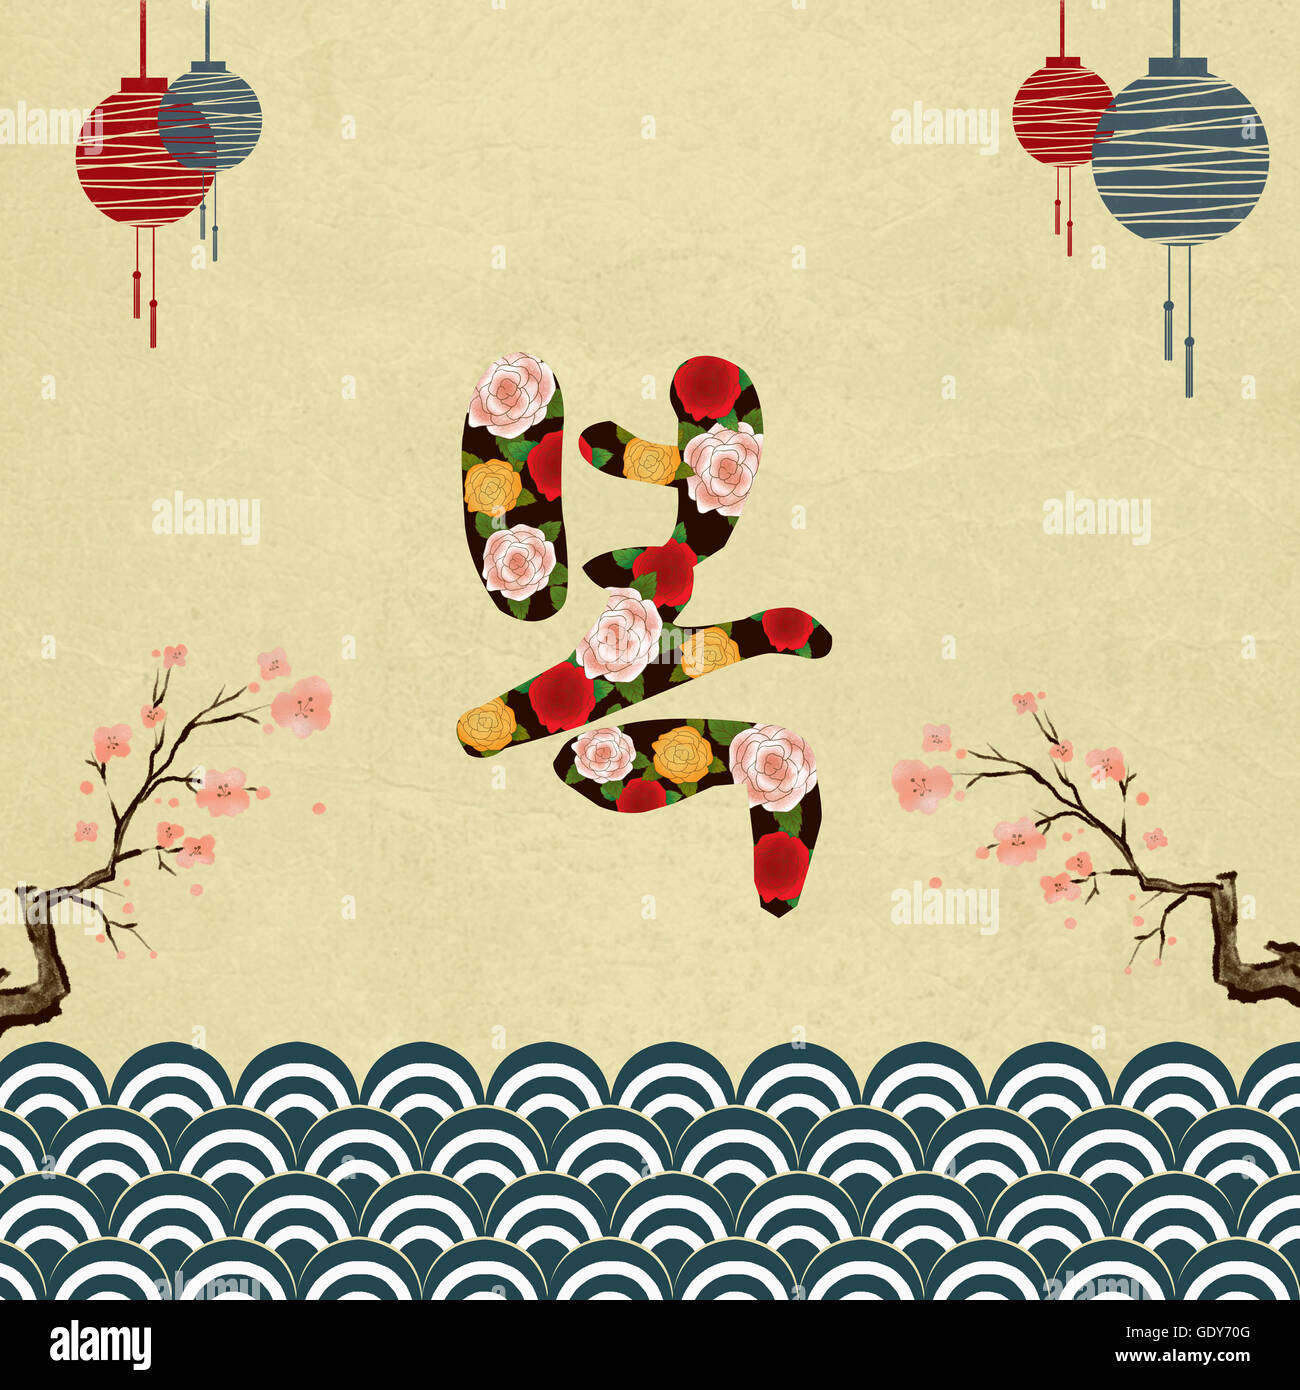 background of new year with calligraphic hangul for fortune and illustration of flowers and traditional korean patterns